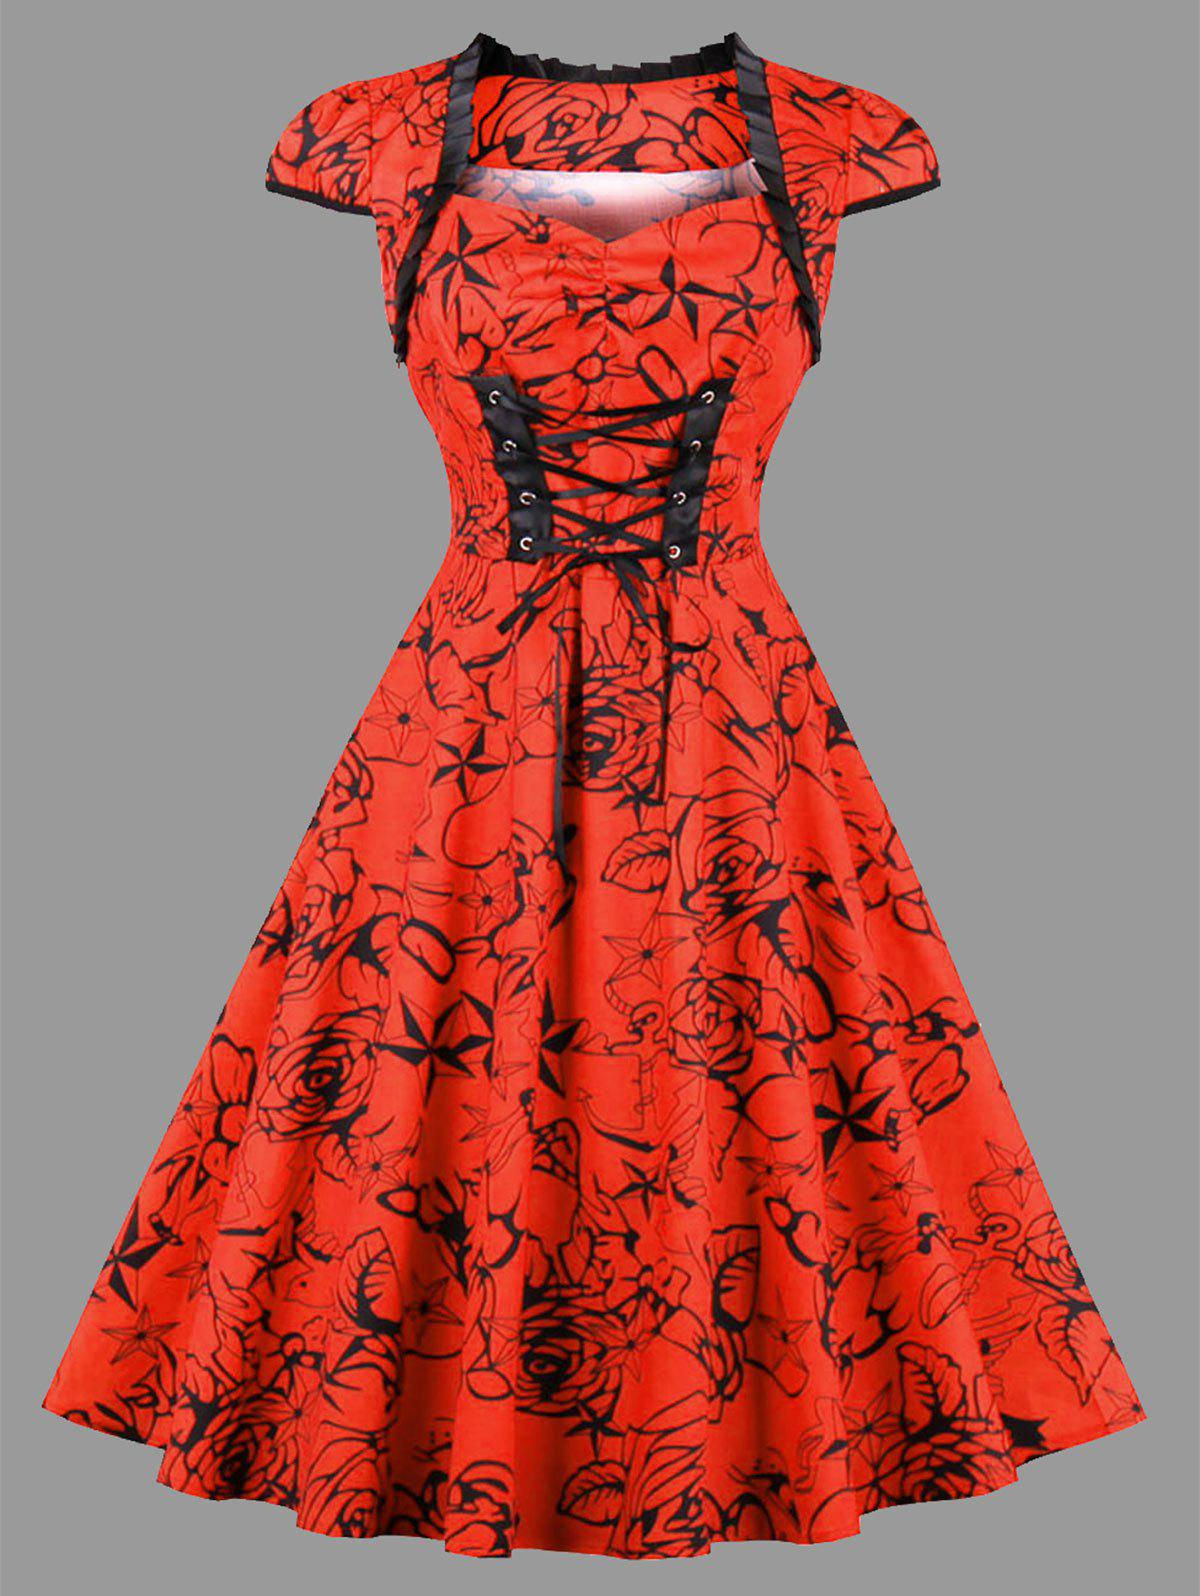 Plus Size Floral Star Print Lace Up DressWOMEN<br><br>Size: 4XL; Color: RED; Style: Vintage; Material: Cotton,Polyester; Silhouette: A-Line; Dresses Length: Knee-Length; Neckline: Sweetheart Neck; Sleeve Type: Cap Sleeve; Sleeve Length: Short Sleeves; Embellishment: Criss-Cross,Ruffles; Pattern Type: Floral,Star; With Belt: No; Season: Fall,Spring,Summer; Weight: 0.4100kg; Package Contents: 1 x Dress;